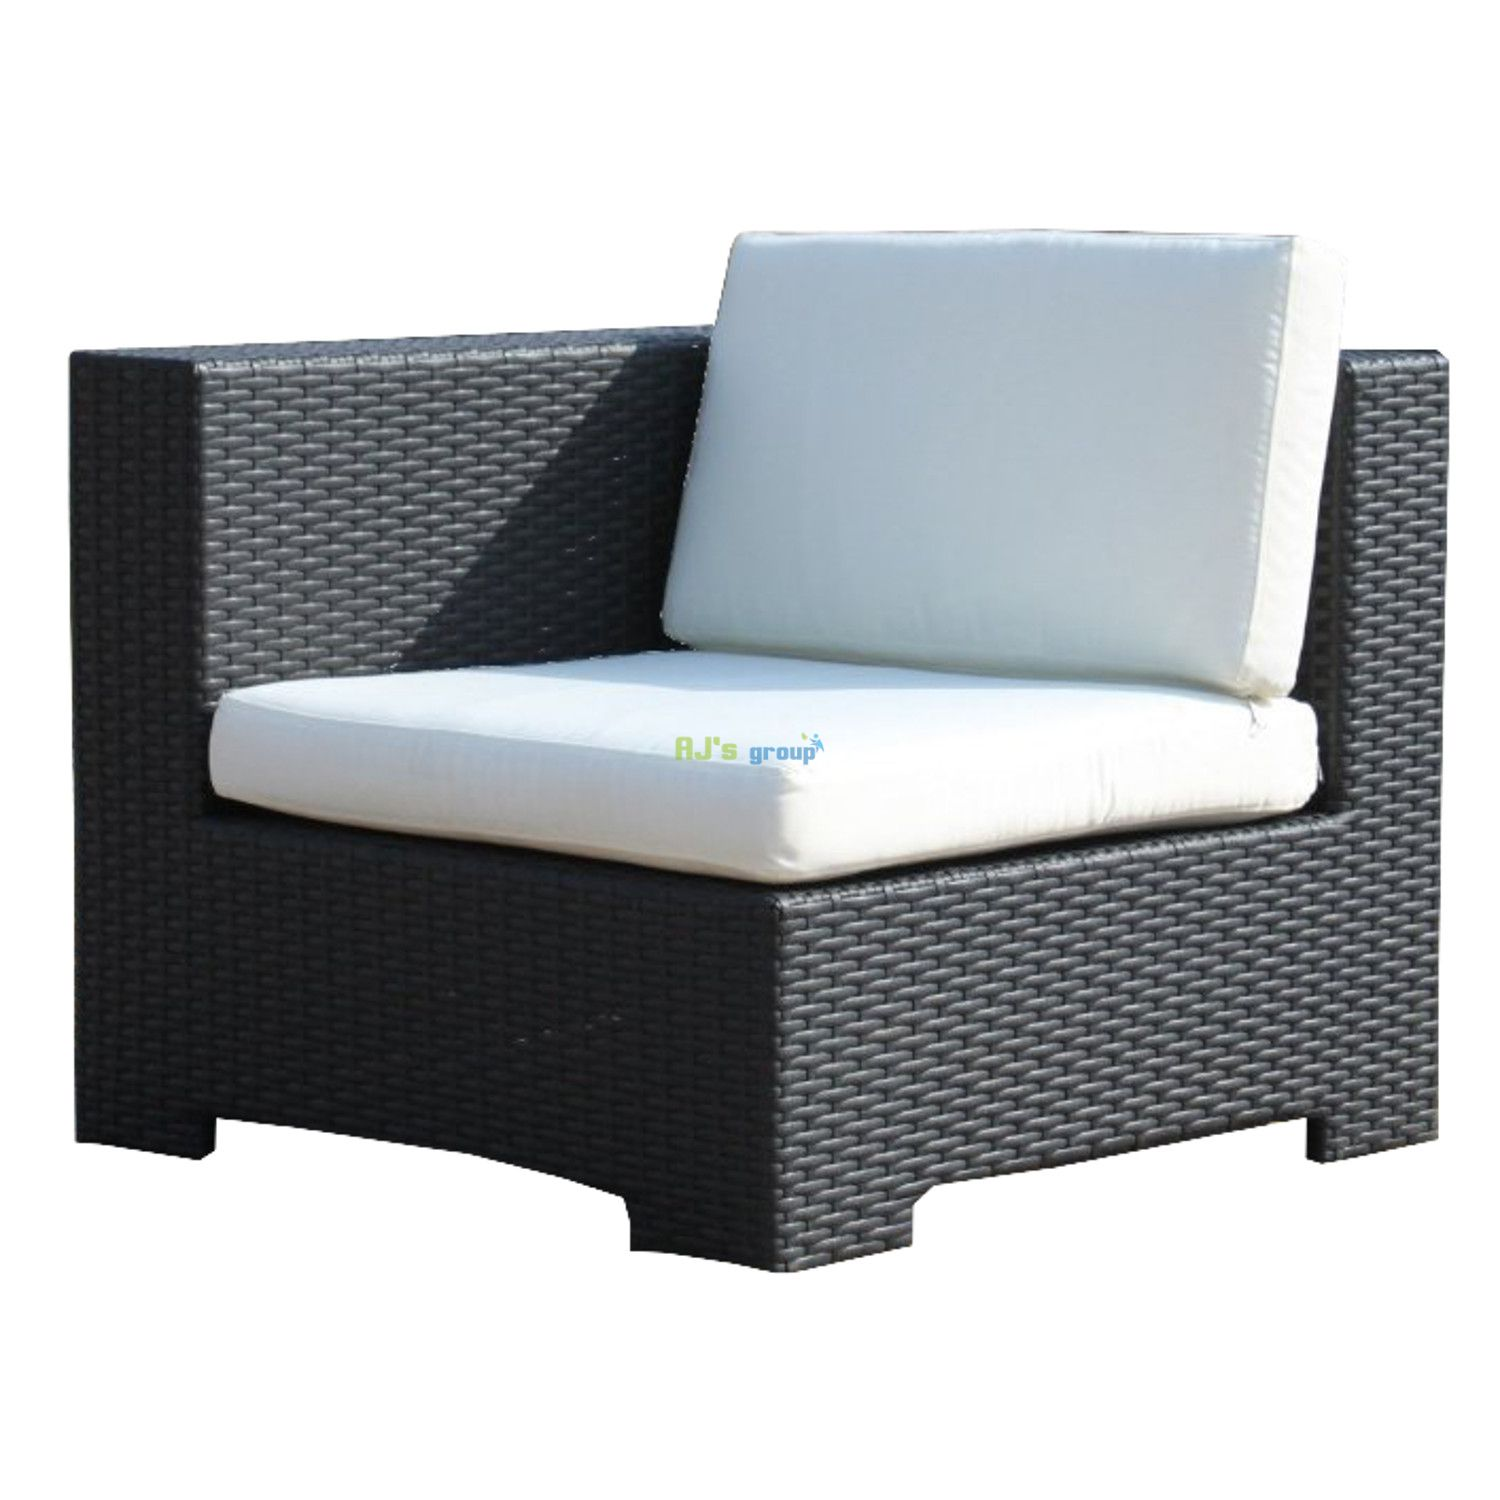 Rattan Wicker Garden Patio Set Los Angeles black Outdoor Lounge